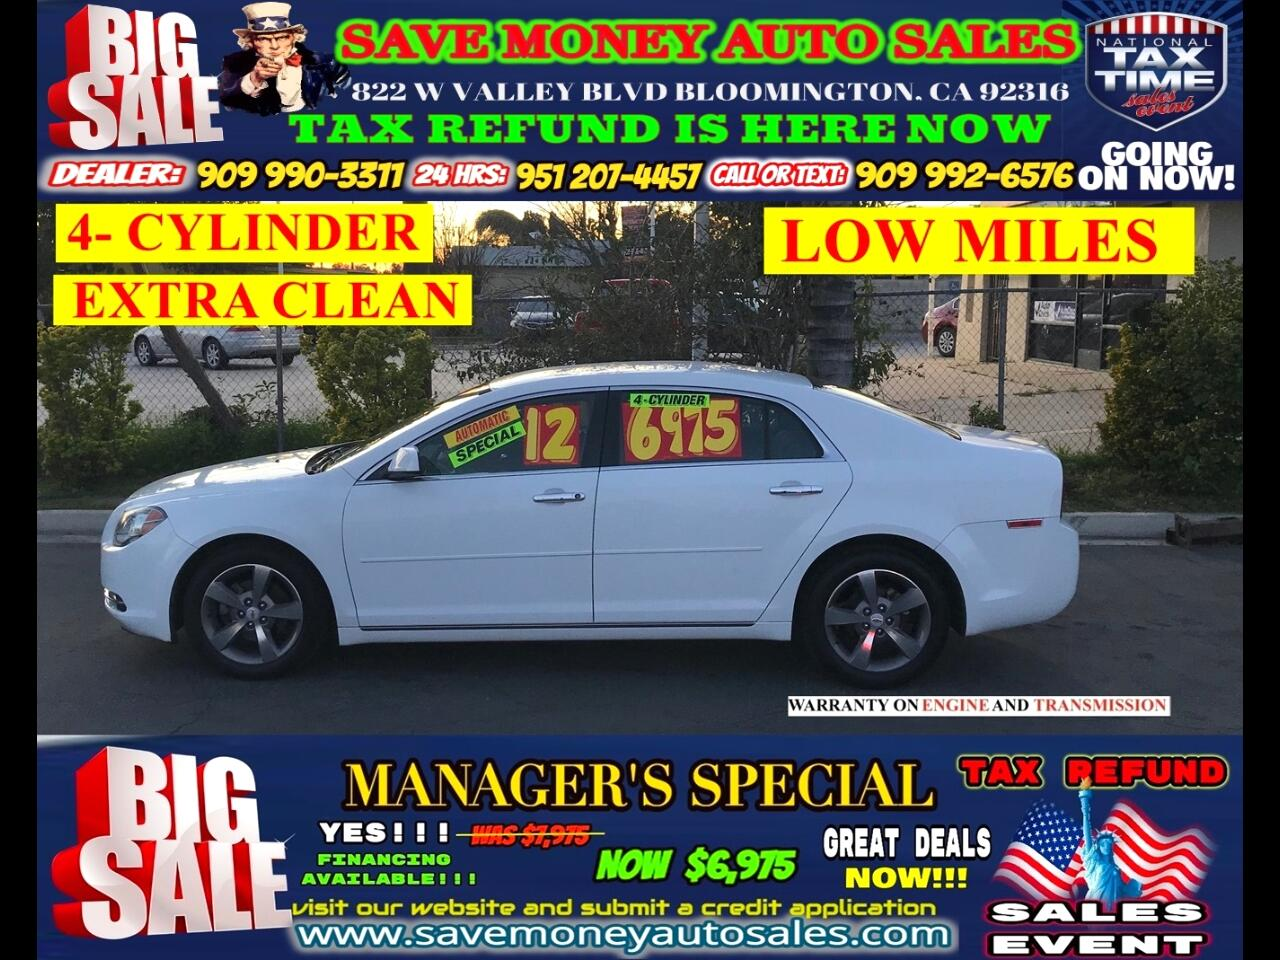 2012 Chevrolet Malibu LT>LOW MILES>USB>EXTRA CLEAN>